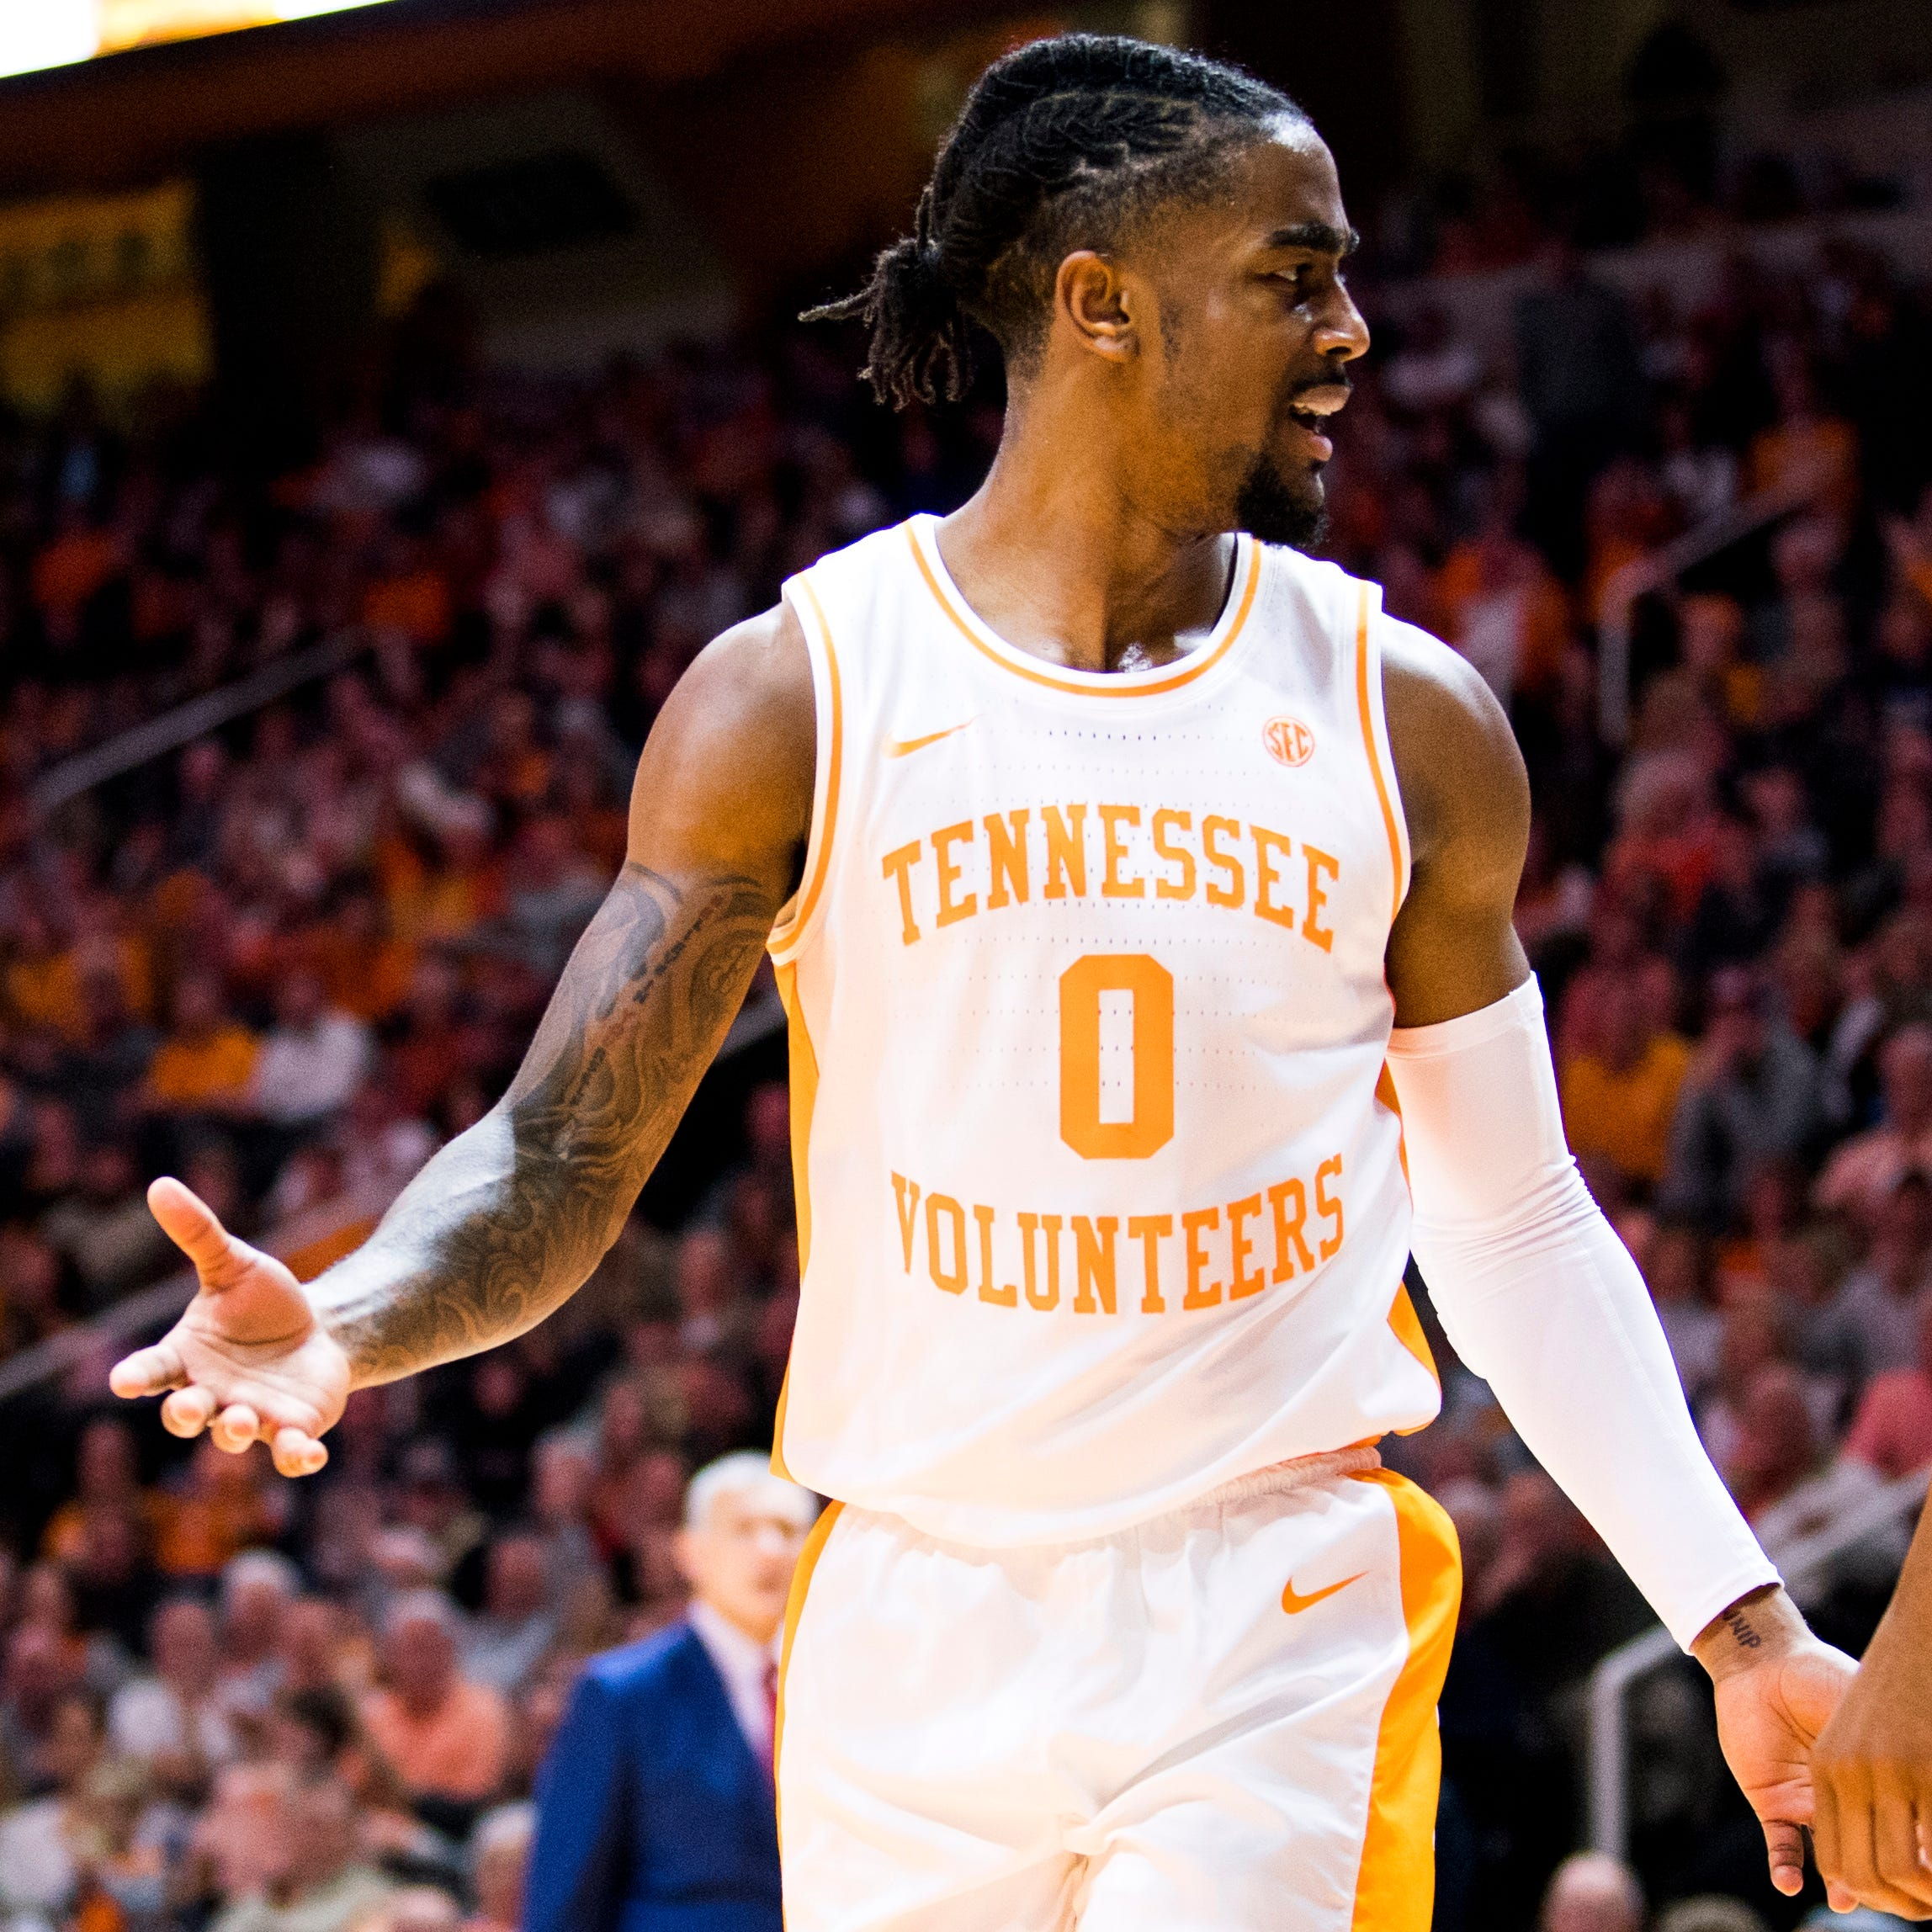 Jordan Bone is the Vol to watch in the oncoming response to Kentucky